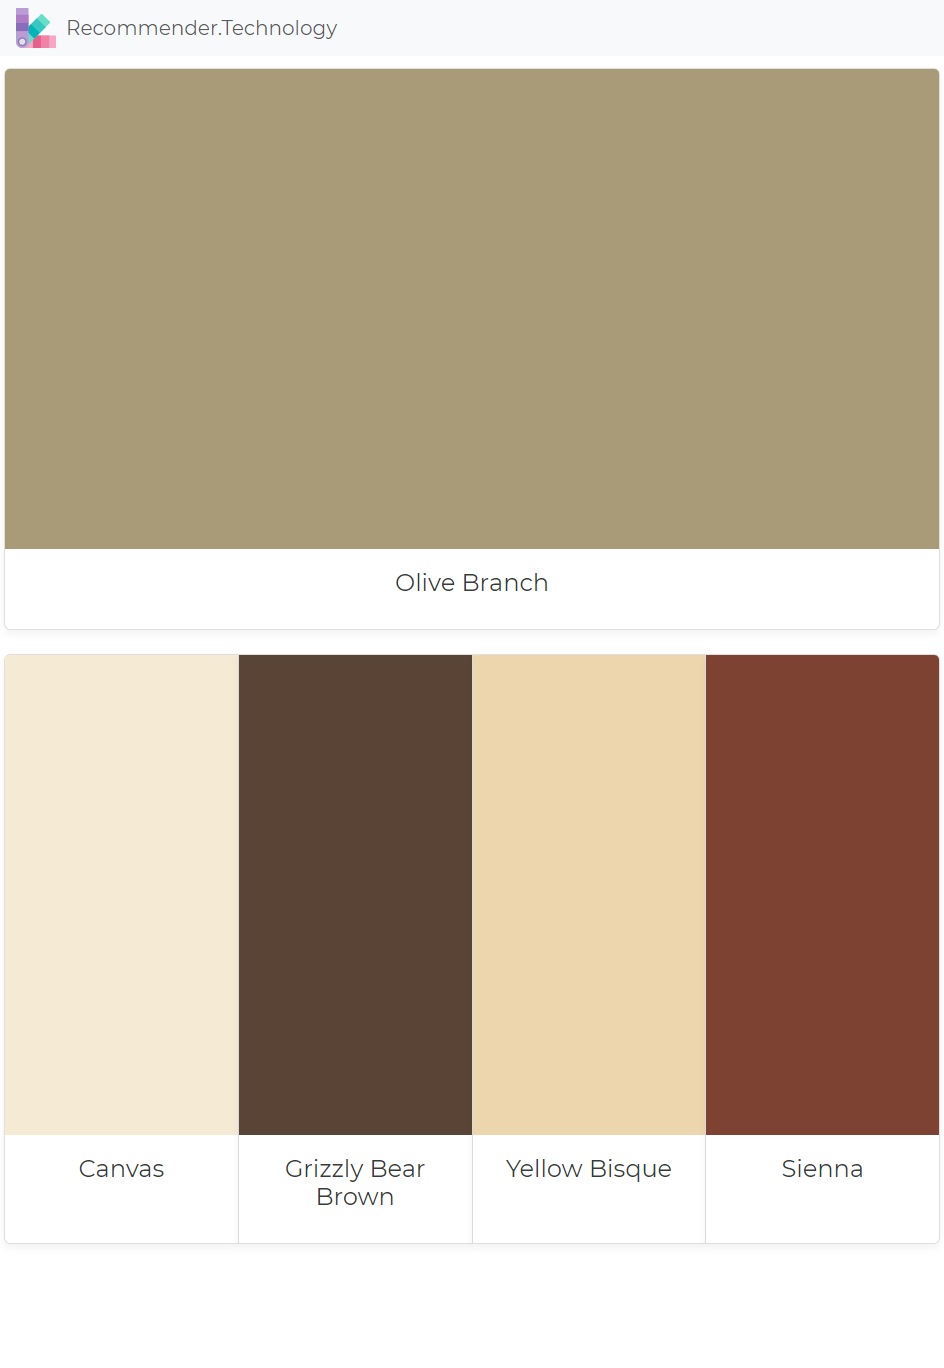 Olive Branch Canvas Grizzly Bear Brown Yellow Bisque Sienna Green Exterior Paints House Paint Color Combination House Paint Exterior